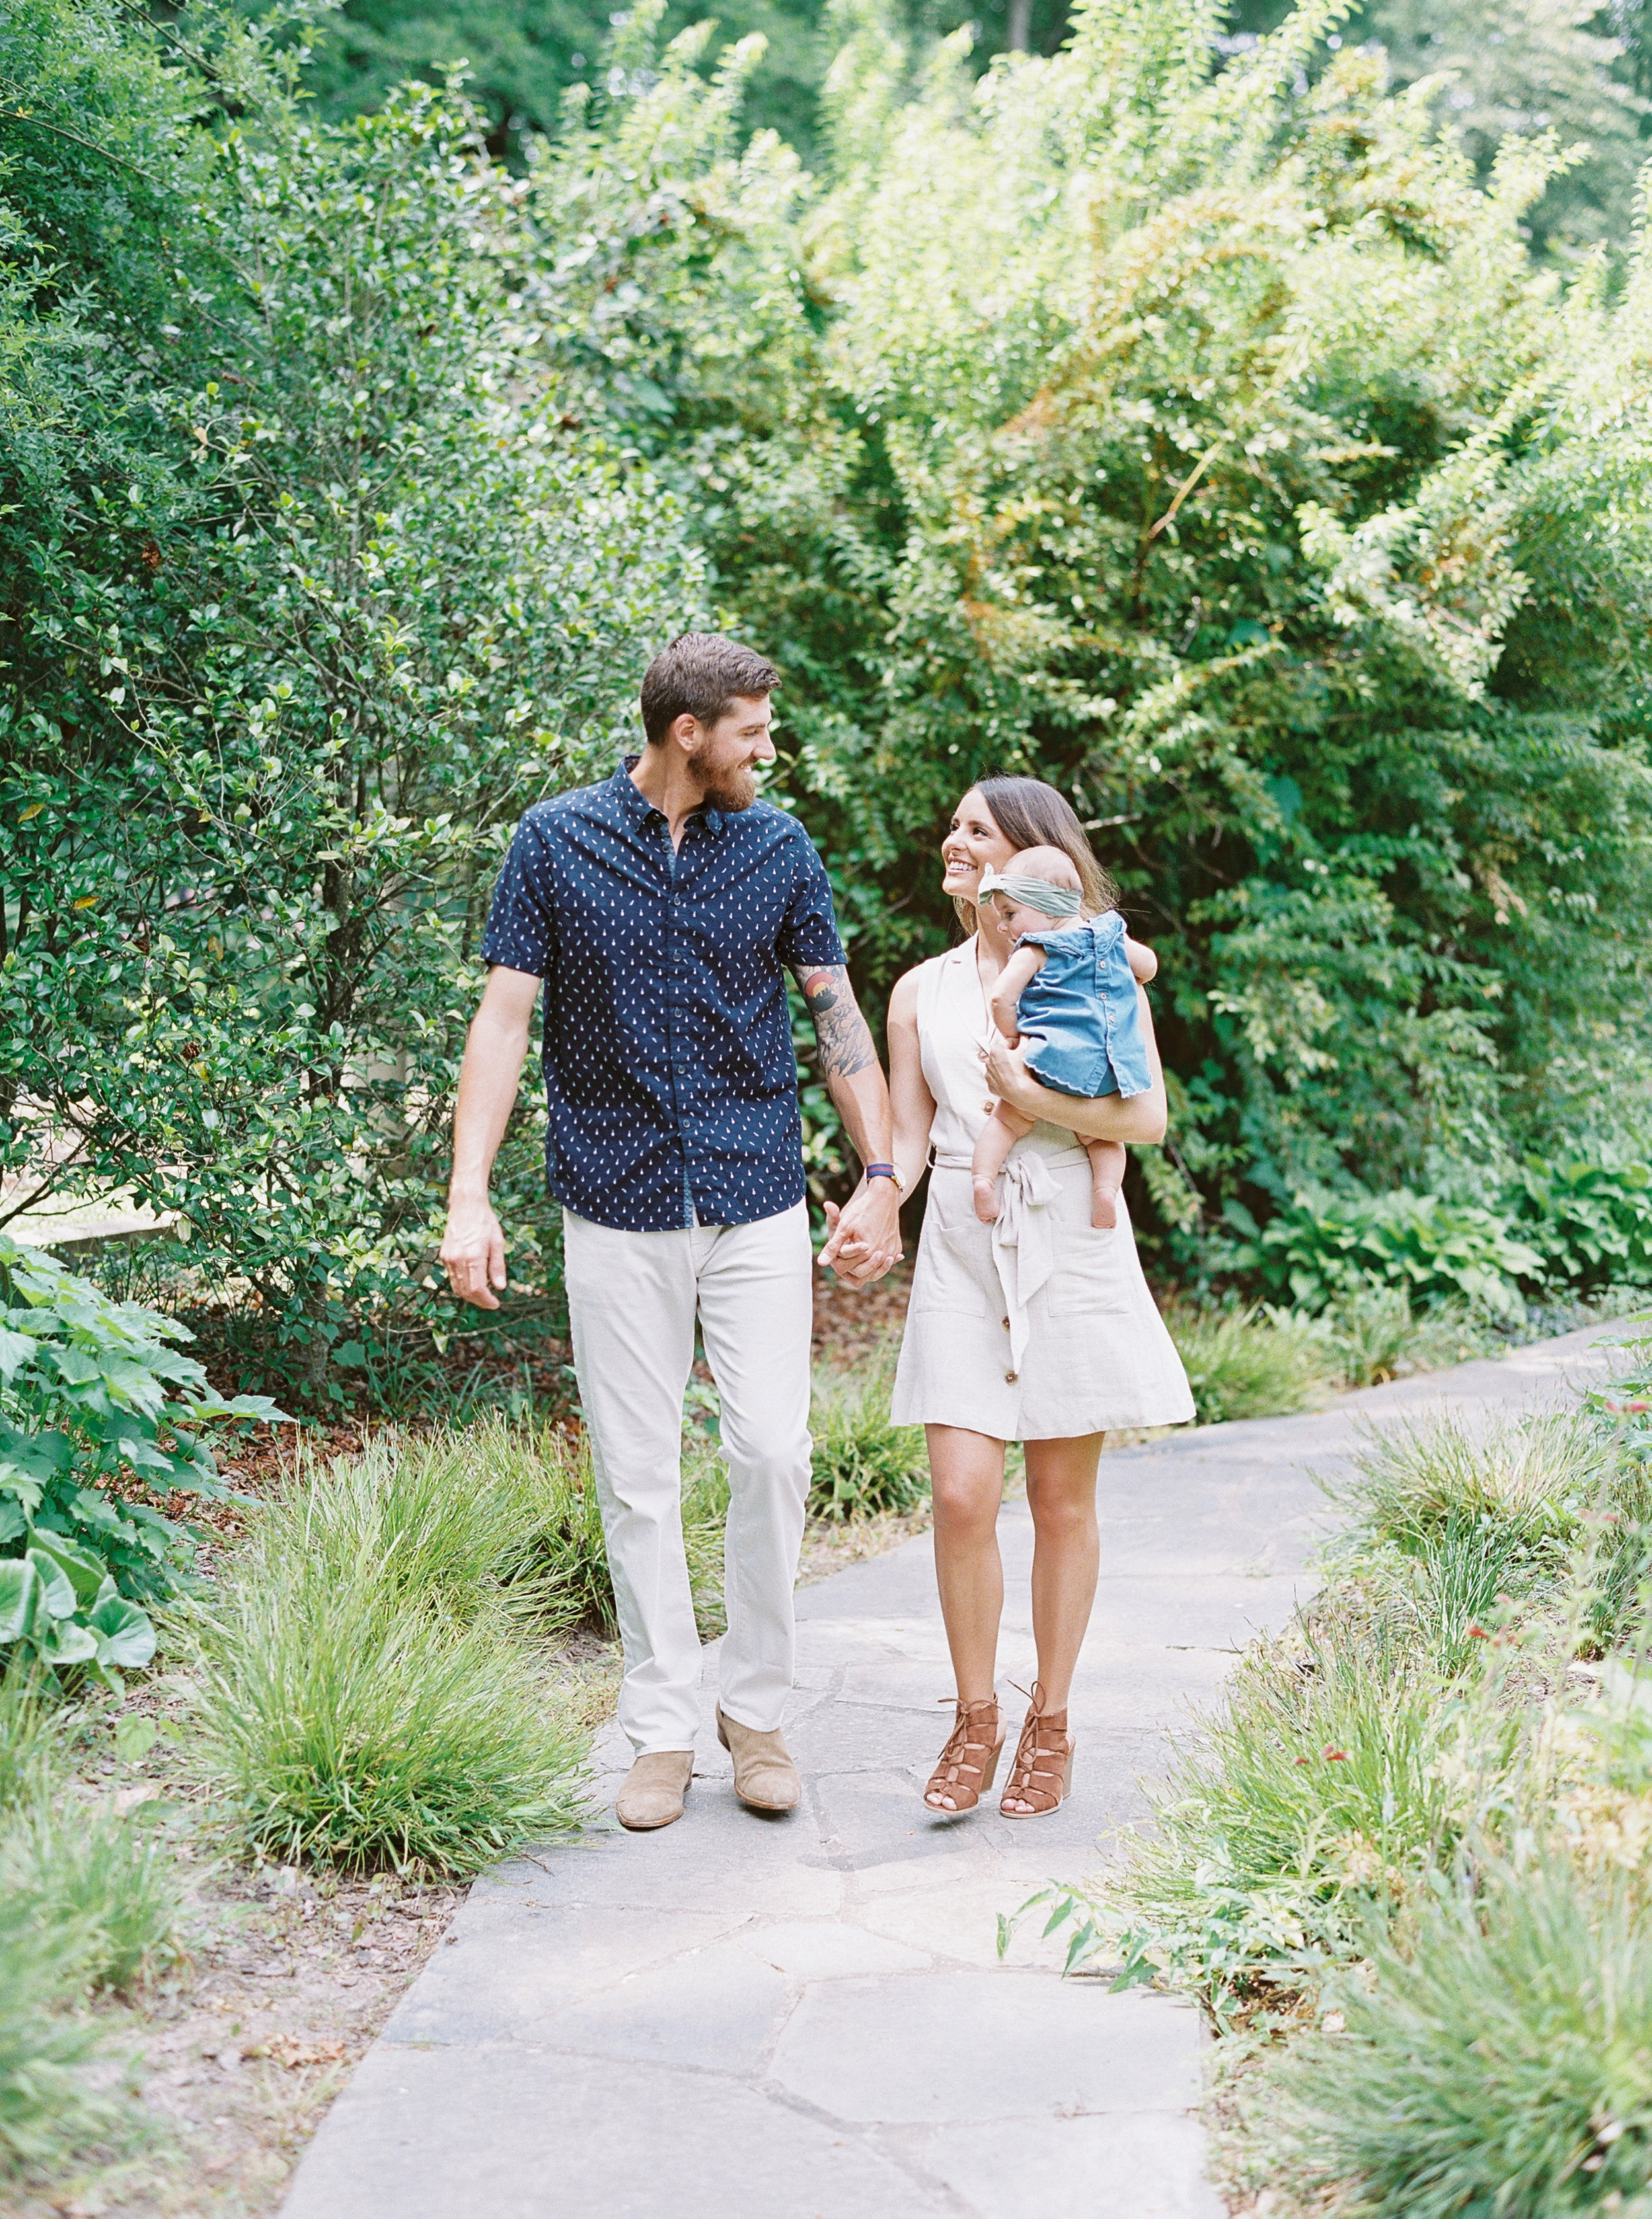 Cator-woolford-gardens-family-photos-atlanta-film-wedding-photographer-6.jpg